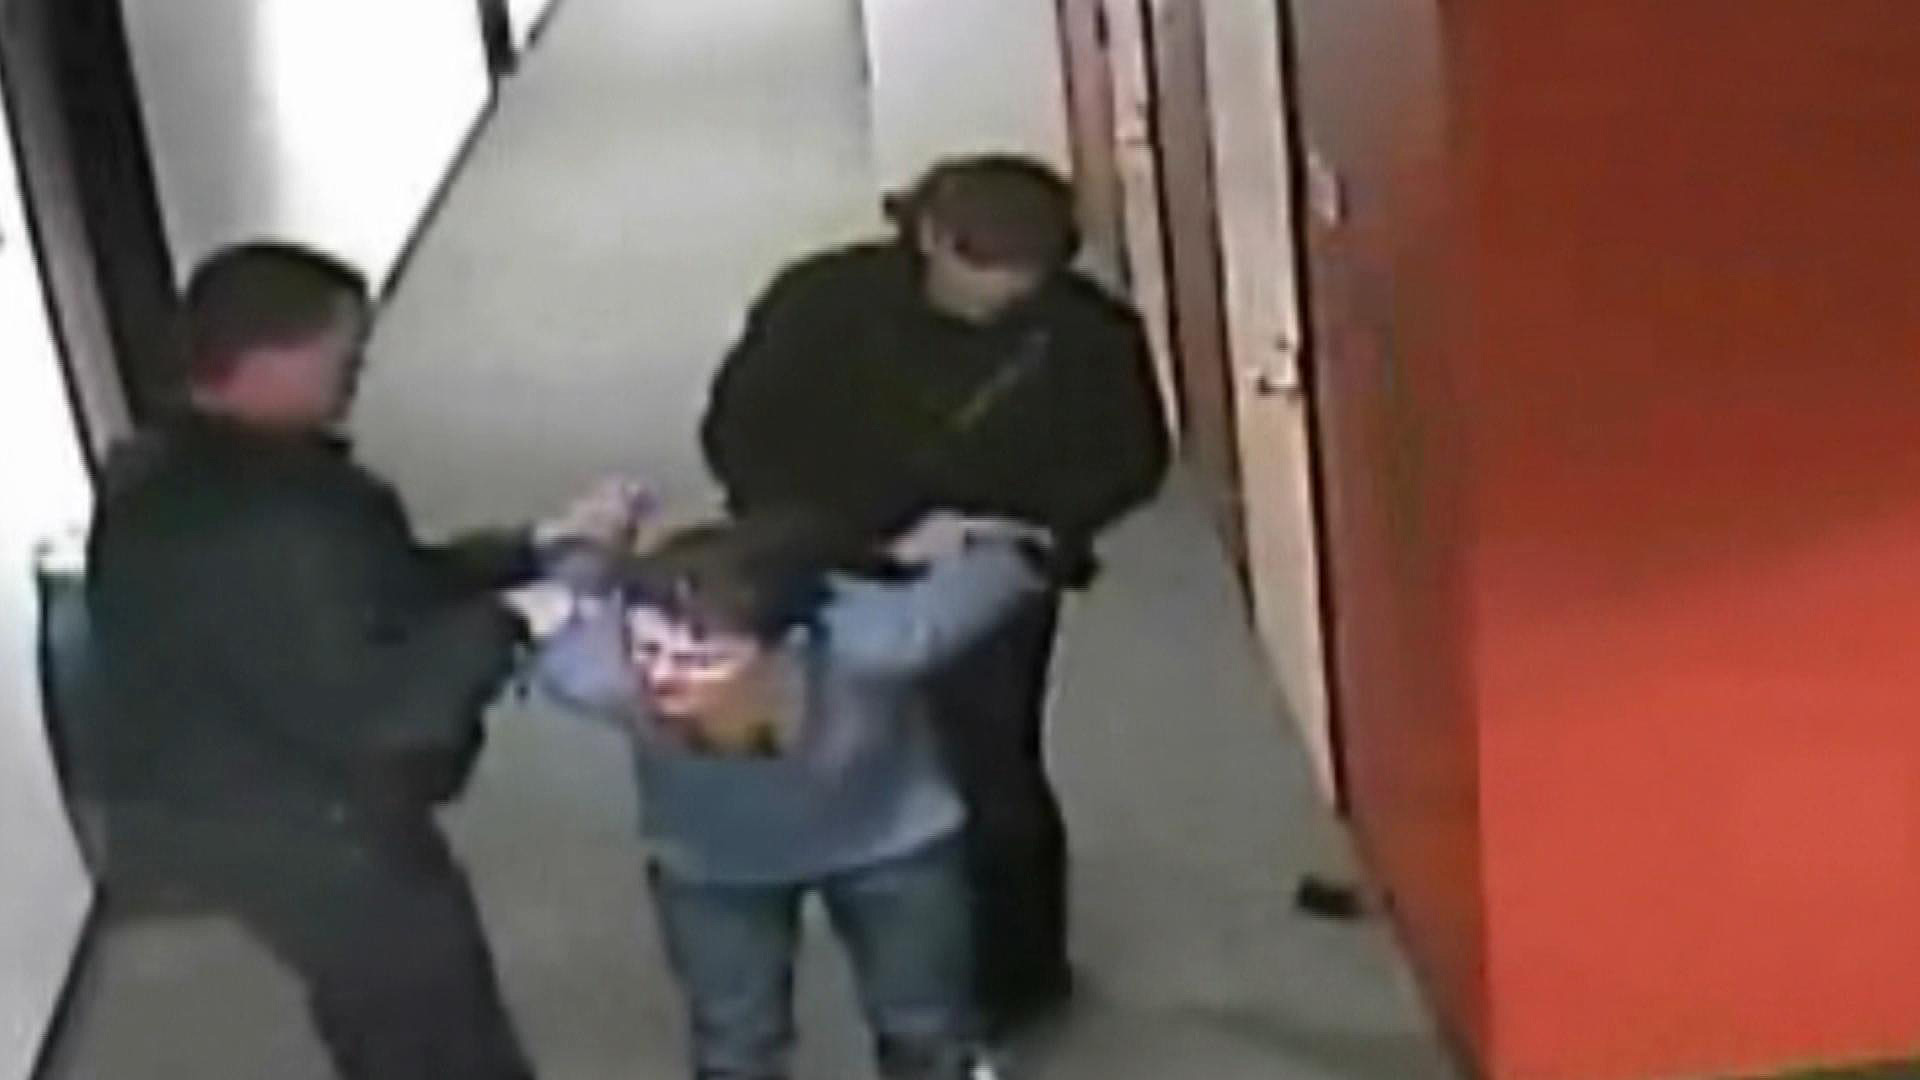 An image of Patricia Lucero  being escorted out of the apartment building (credit; CBS)